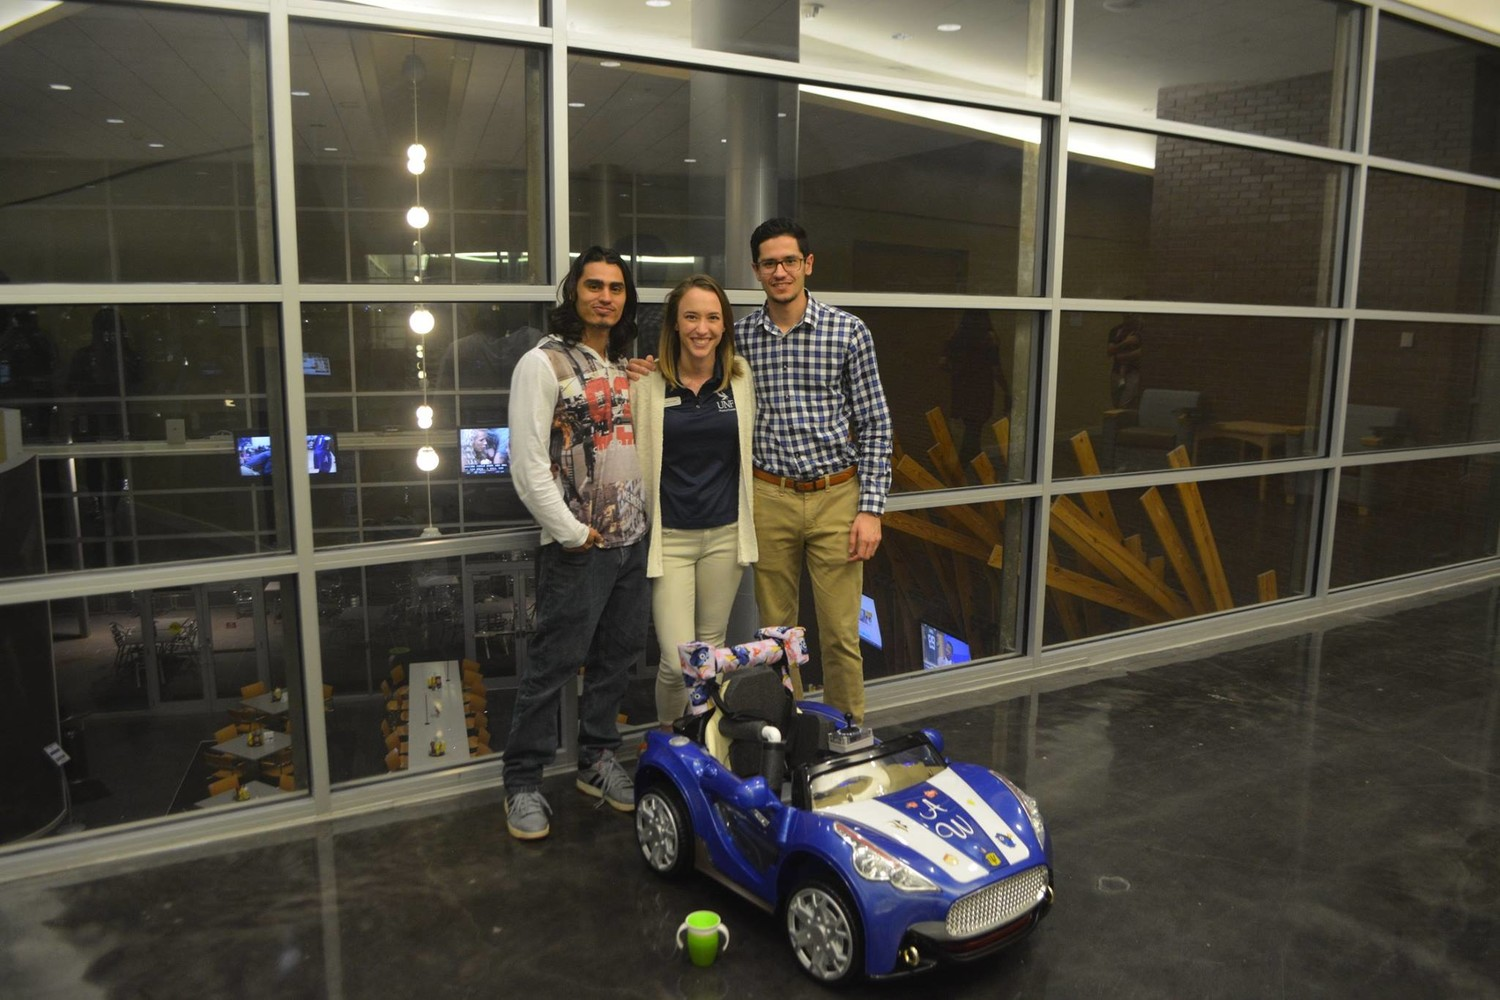 Husam Safar (right) poses for a picture with his teammates, behind their toy car creation.